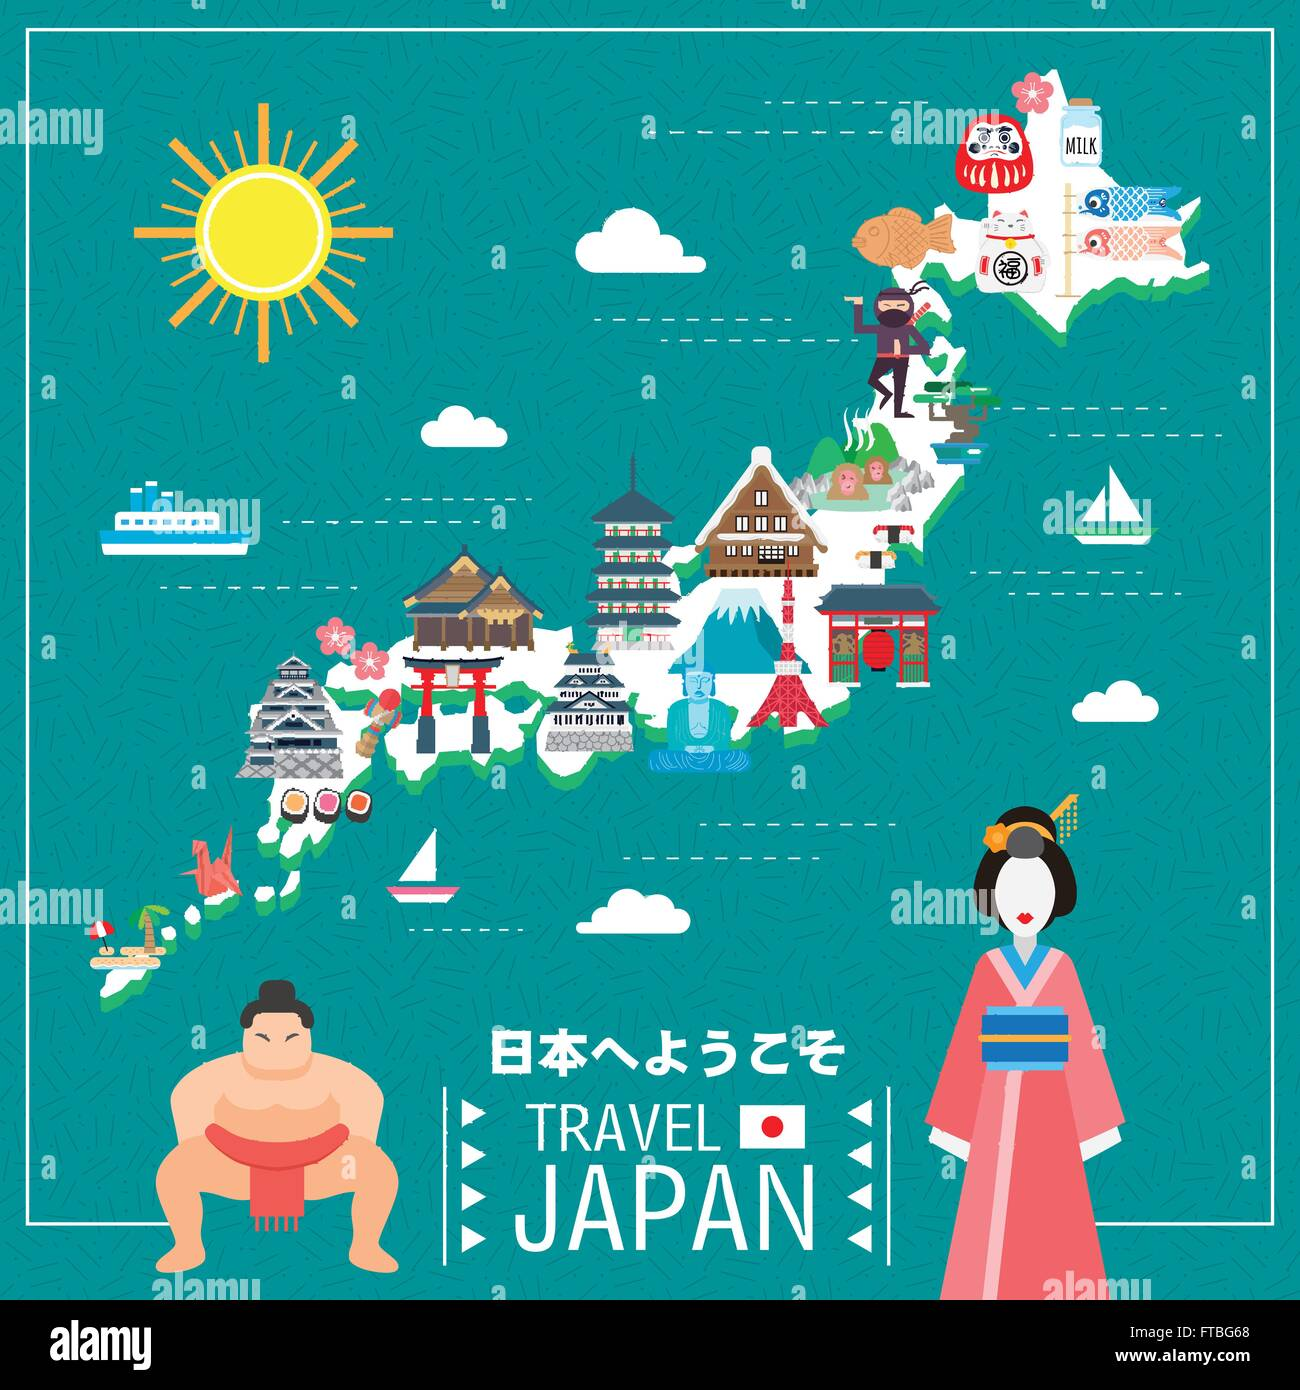 Lovely Japan Travel Map Welcome To Japan In Japanese Stock - Japan map vector art